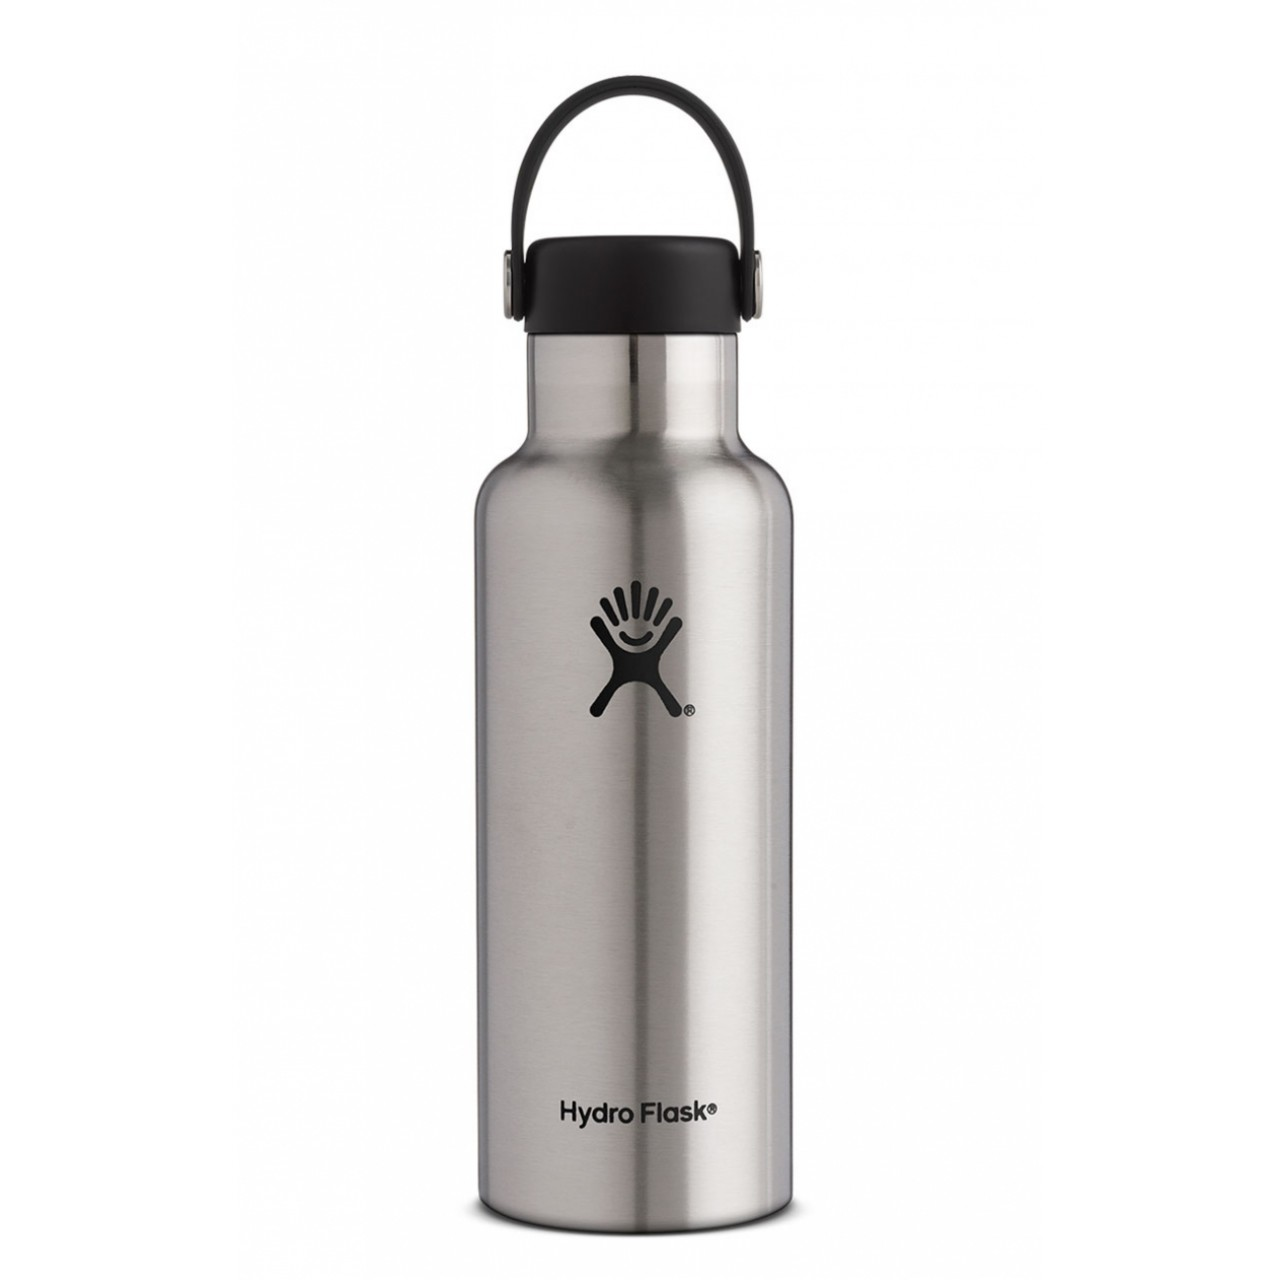 Hydro Flask - Insulated Water Bottle 18oz